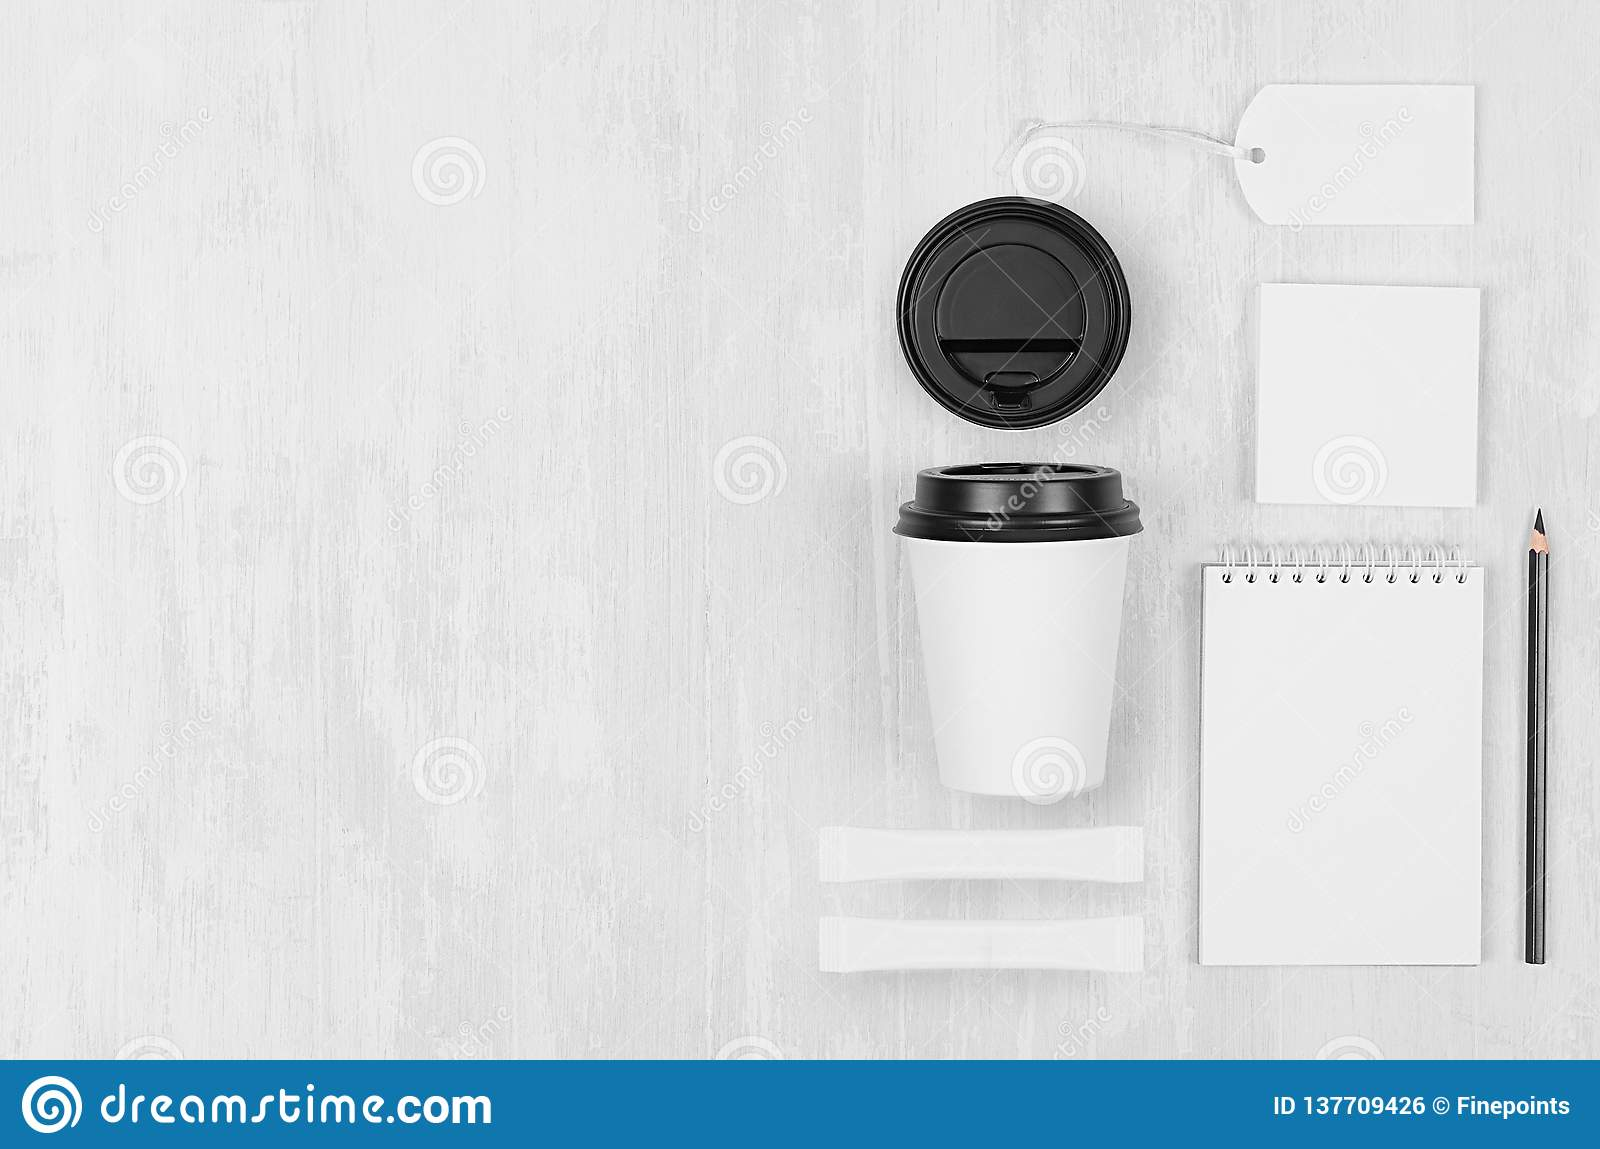 Coffee branding identity mockup in light modern style - white paper cup, blank notebook, card, label, stationery, sugar.